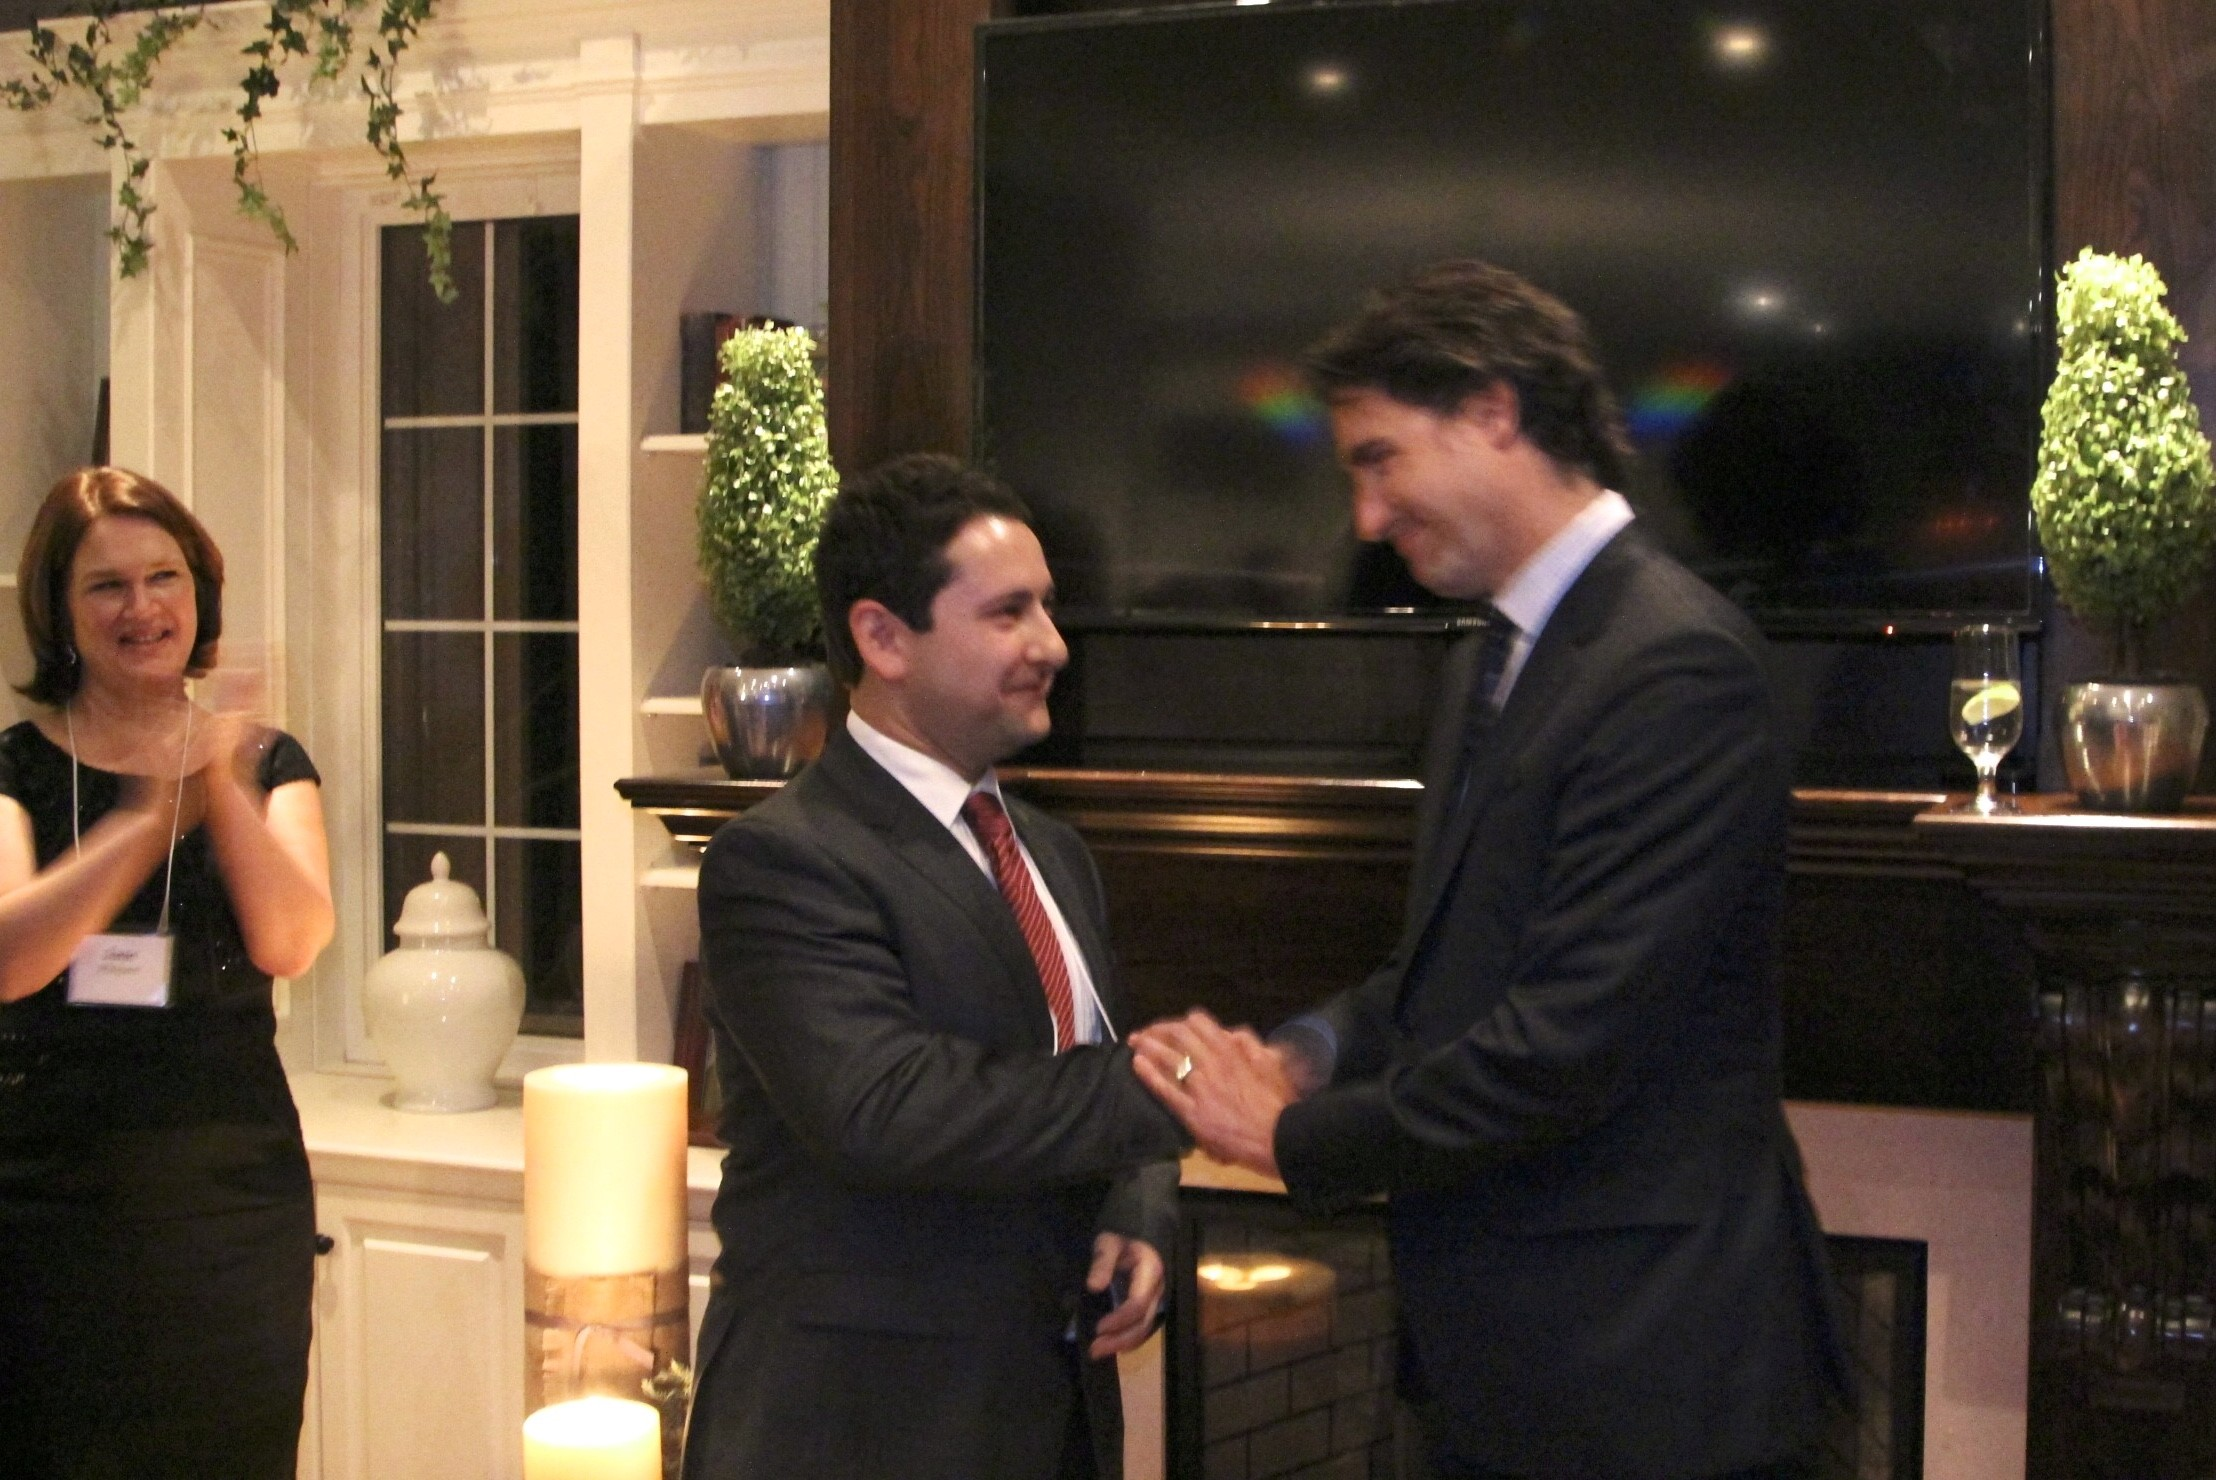 Justin Trudeau thanking Jason for his work on behalf of grassroots Liberals